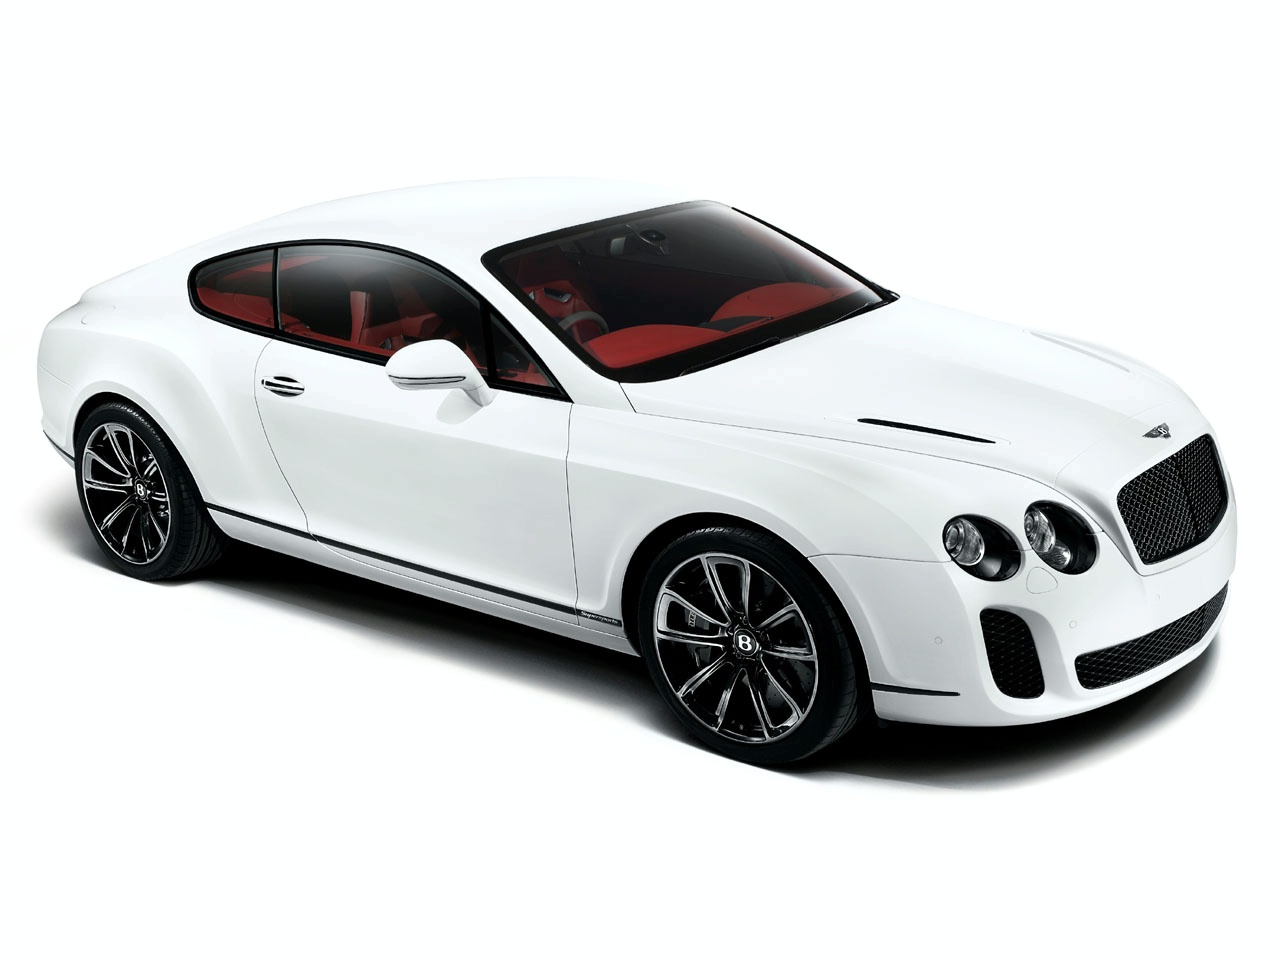 2011 bentley continental supersports sport cars and motorcycle news 2011 bentley continental super sport is a high performance two seater coupe continental gt version which offers a trim levels very well equipped vanachro Image collections